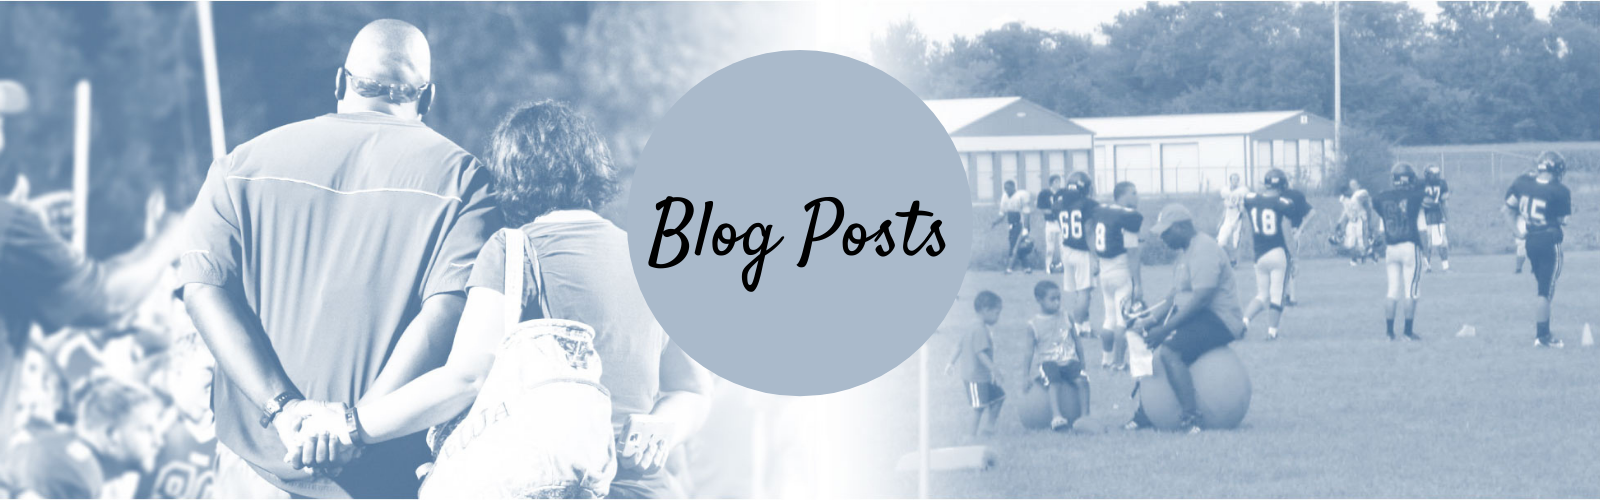 blog for coaches' wives and ministry wives and women in the public eye